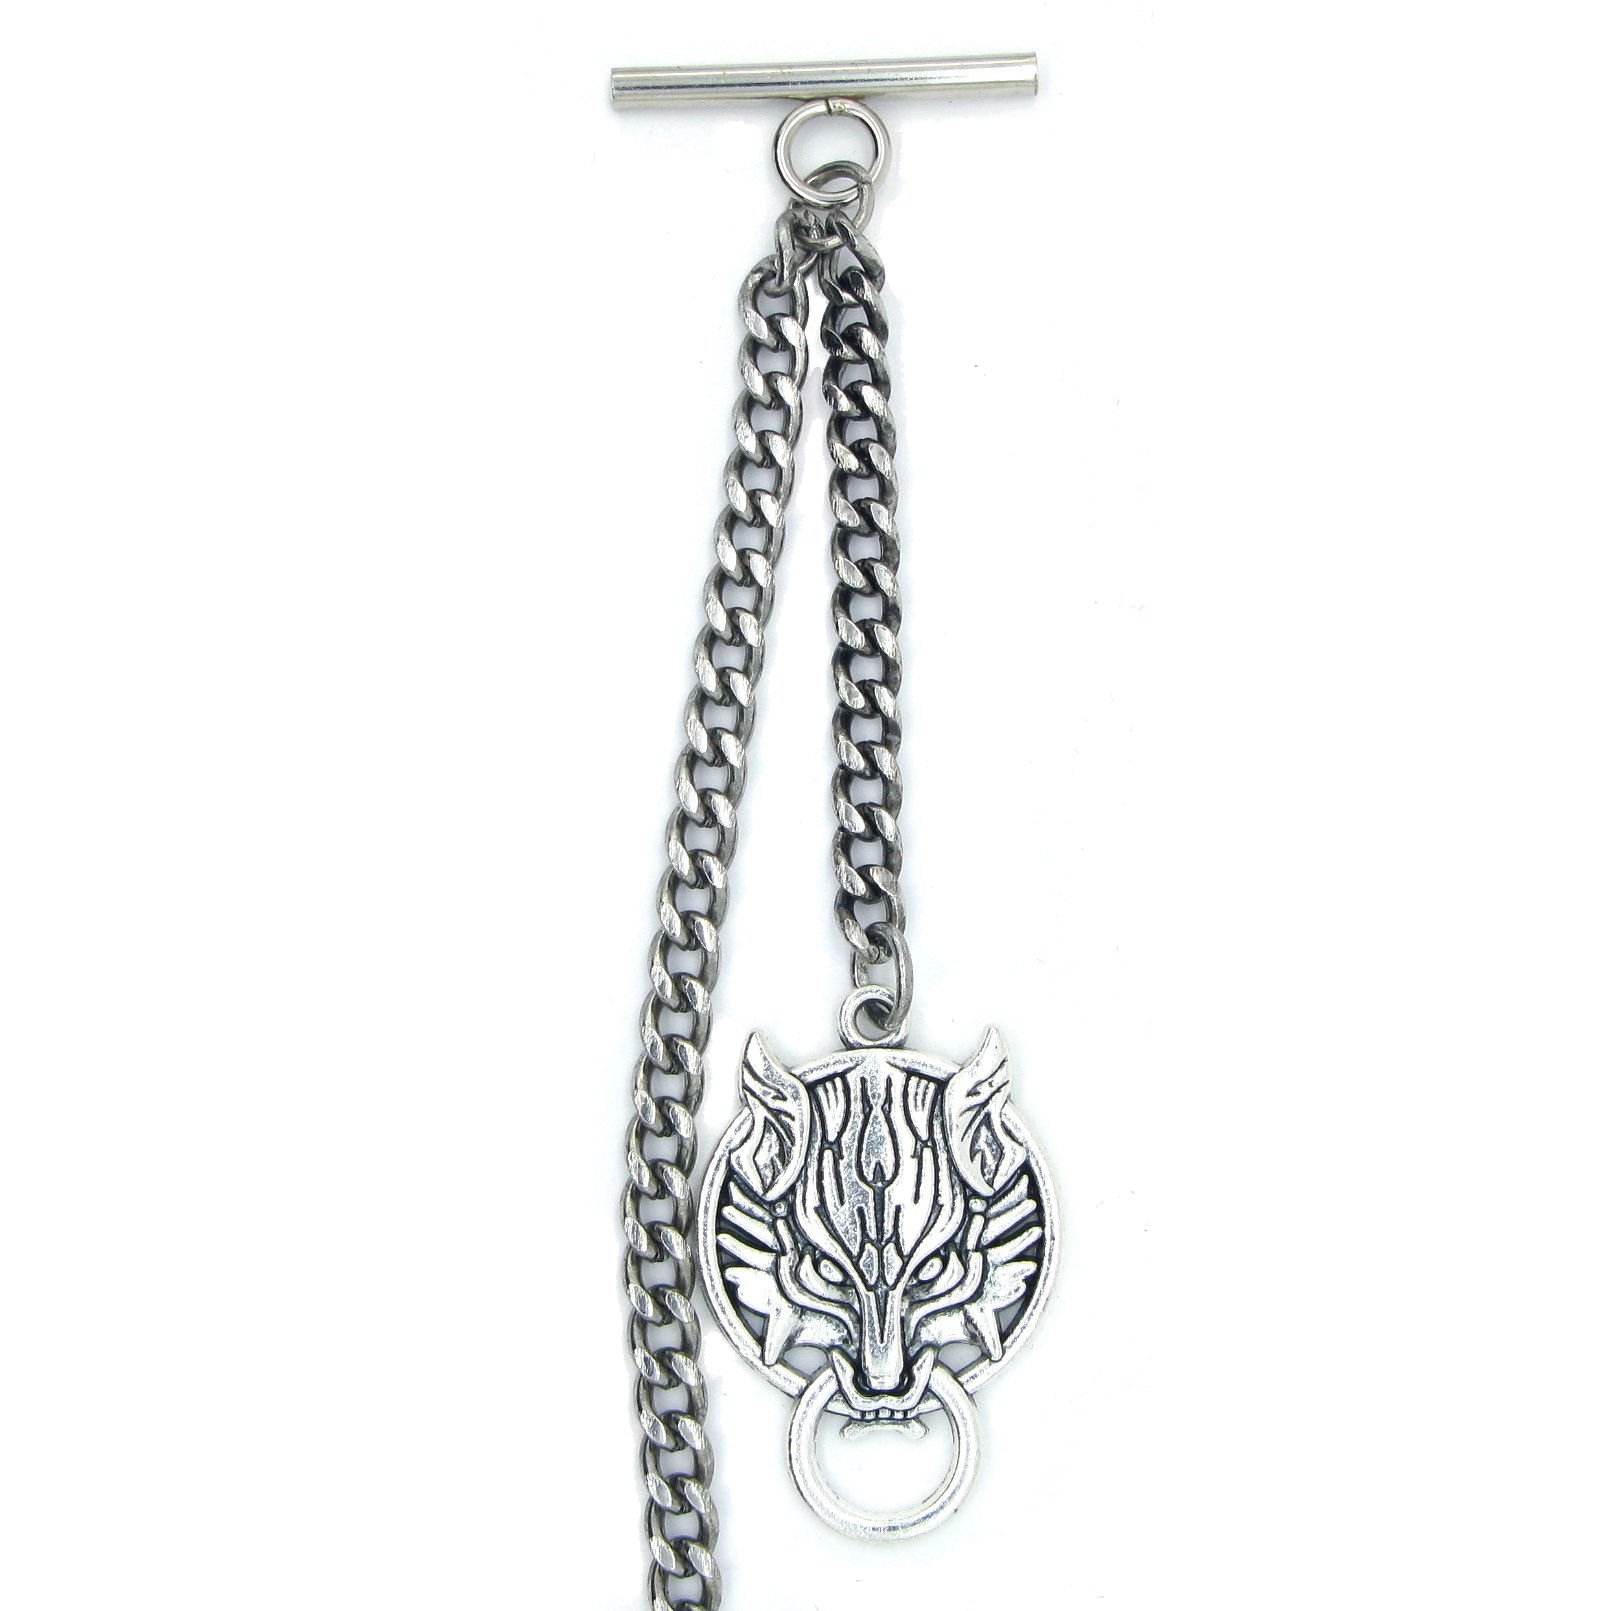 Albert Chain Pocket Watch Curb Link Chain Antique Silver Color Ancient Animal Fob T Bar AC45 by watchvshop (Image #4)